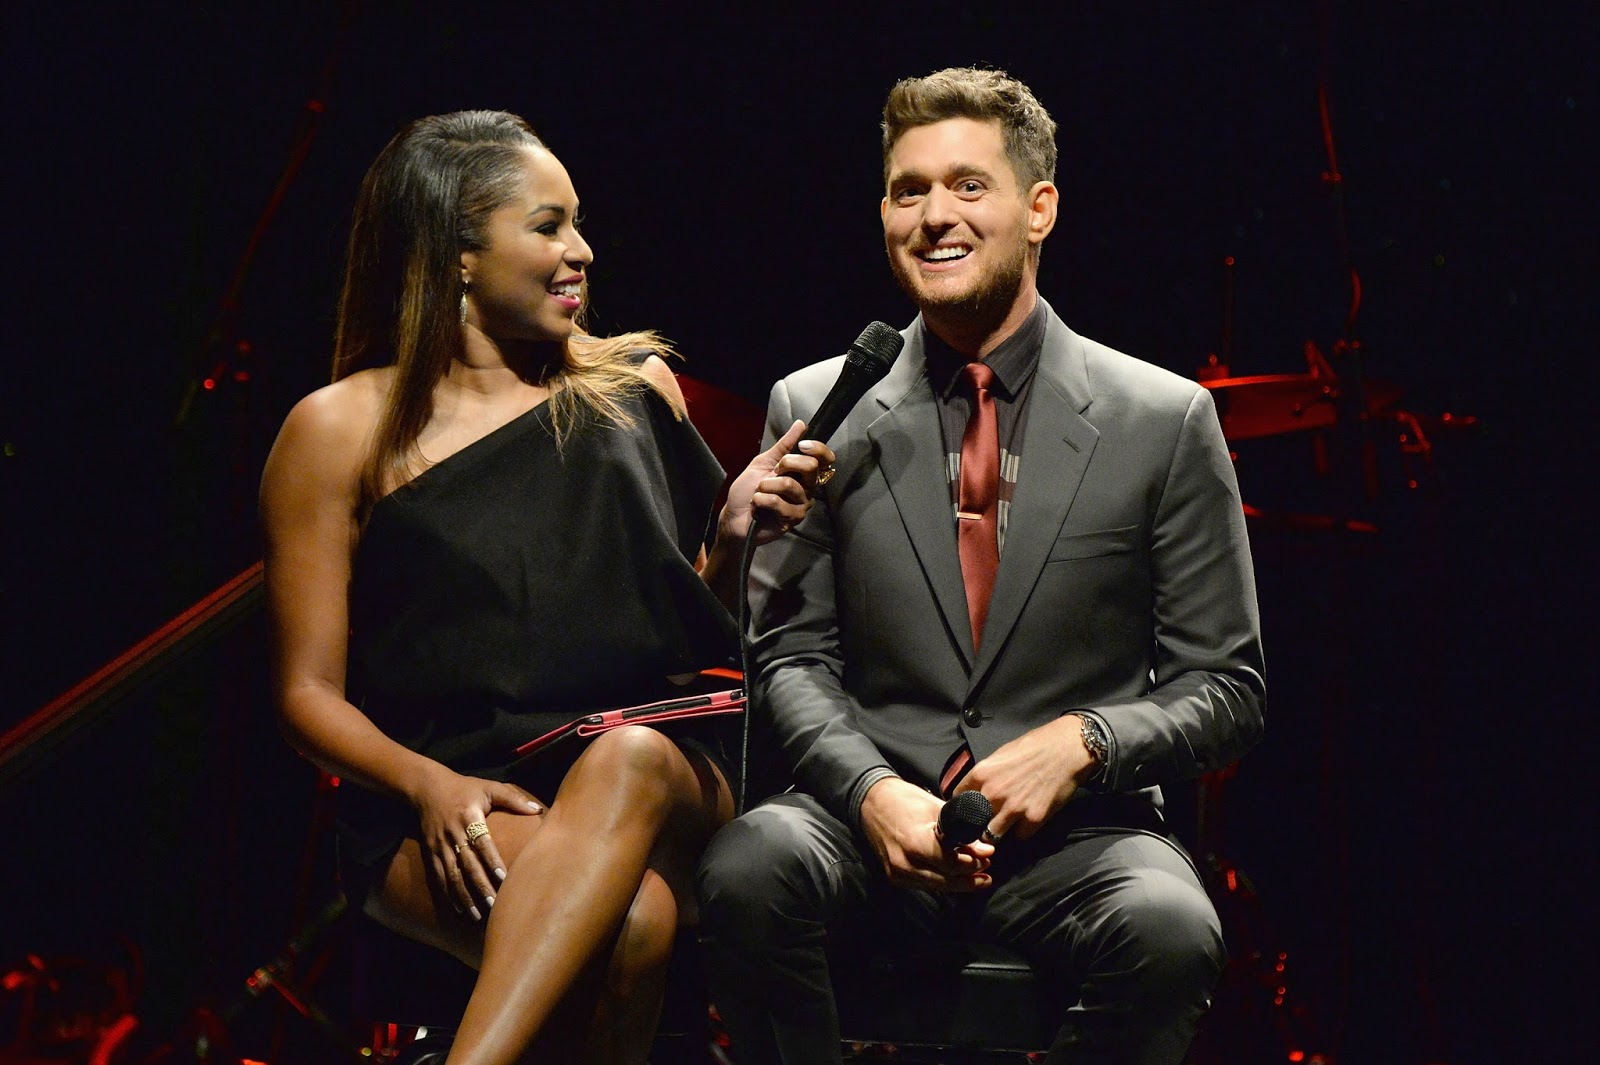 Michael Buble, By Invitation perfume launch in New York